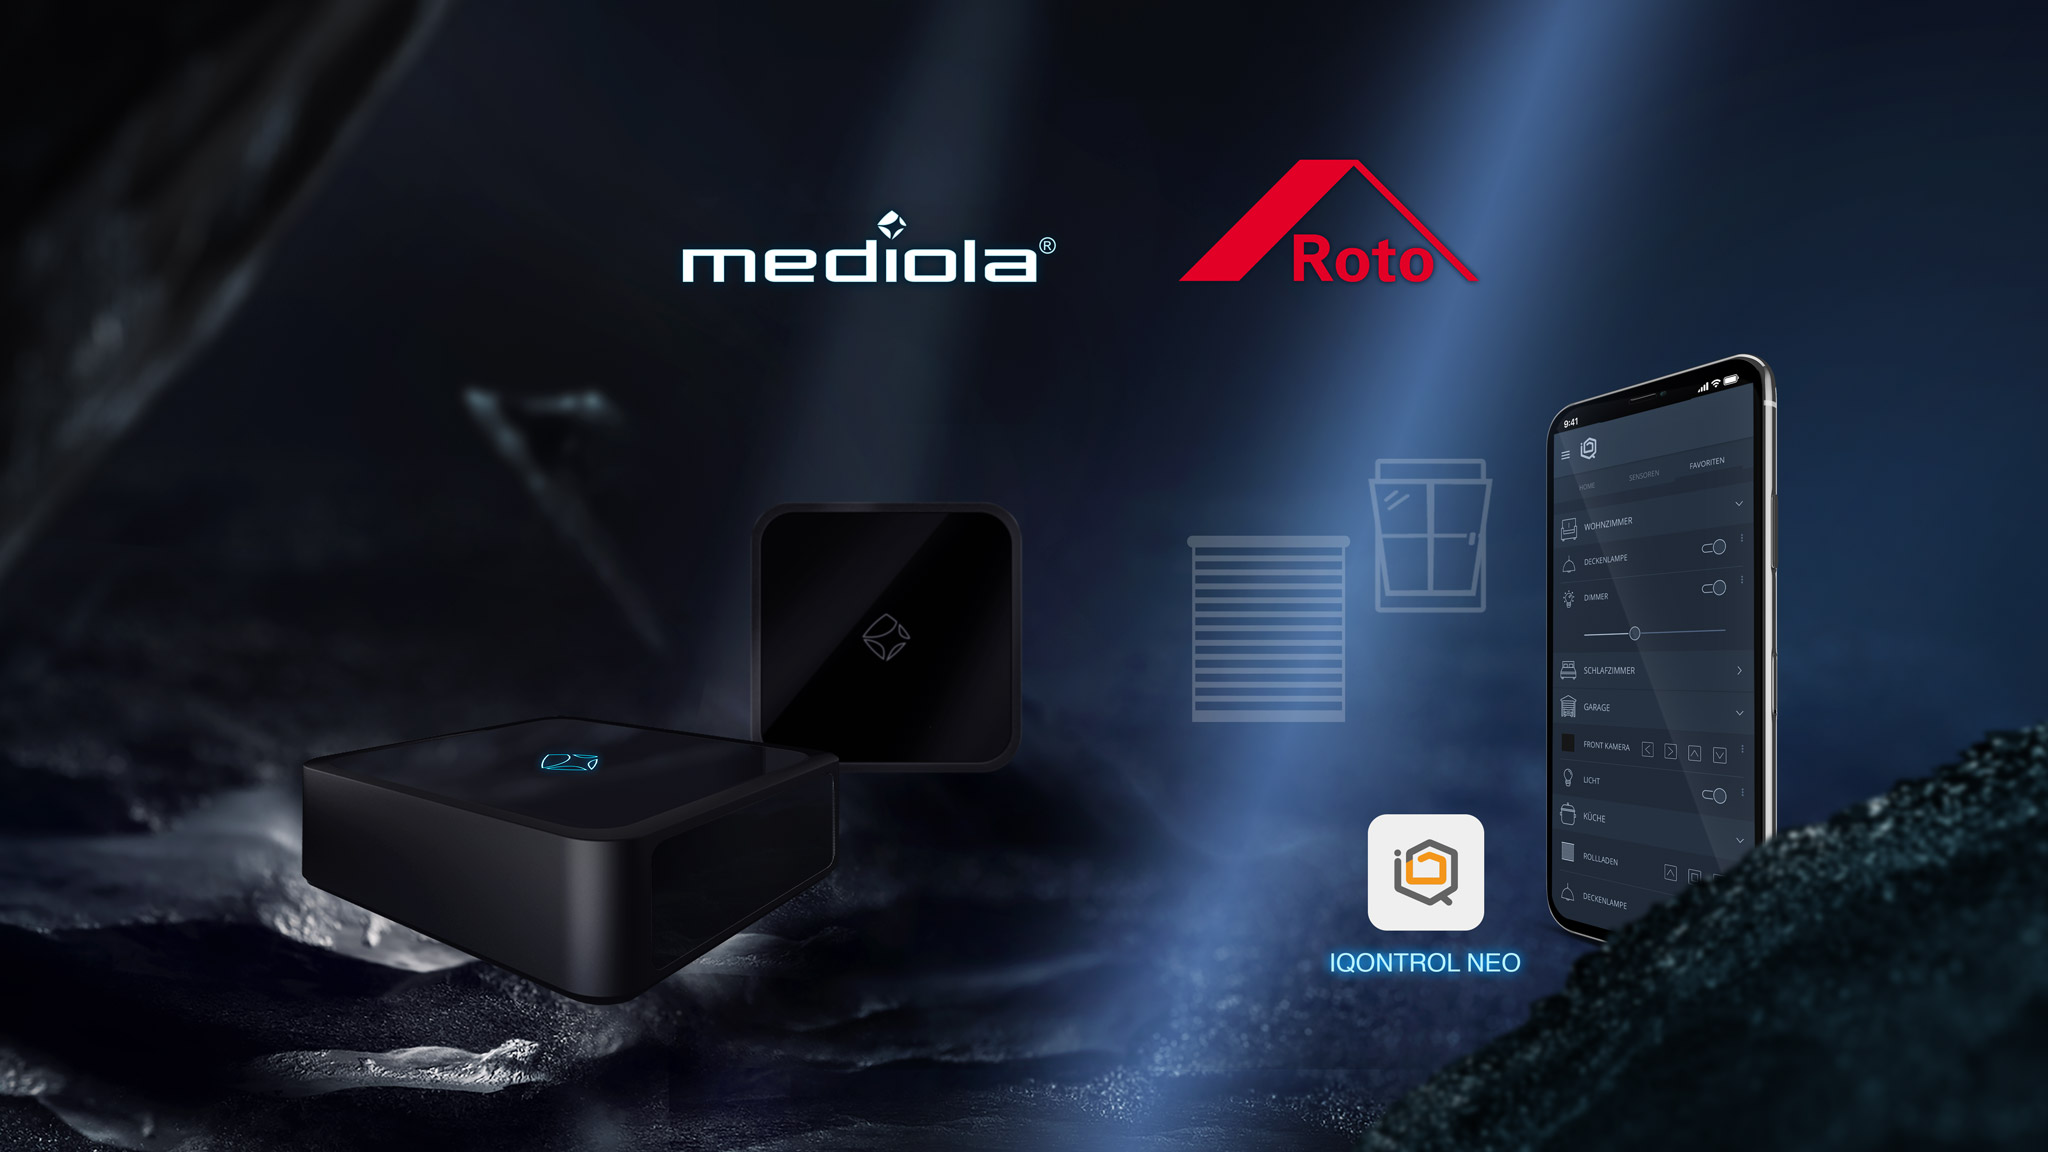 works with mediola - roto _ aio gateways & Iqontrol neo smart home